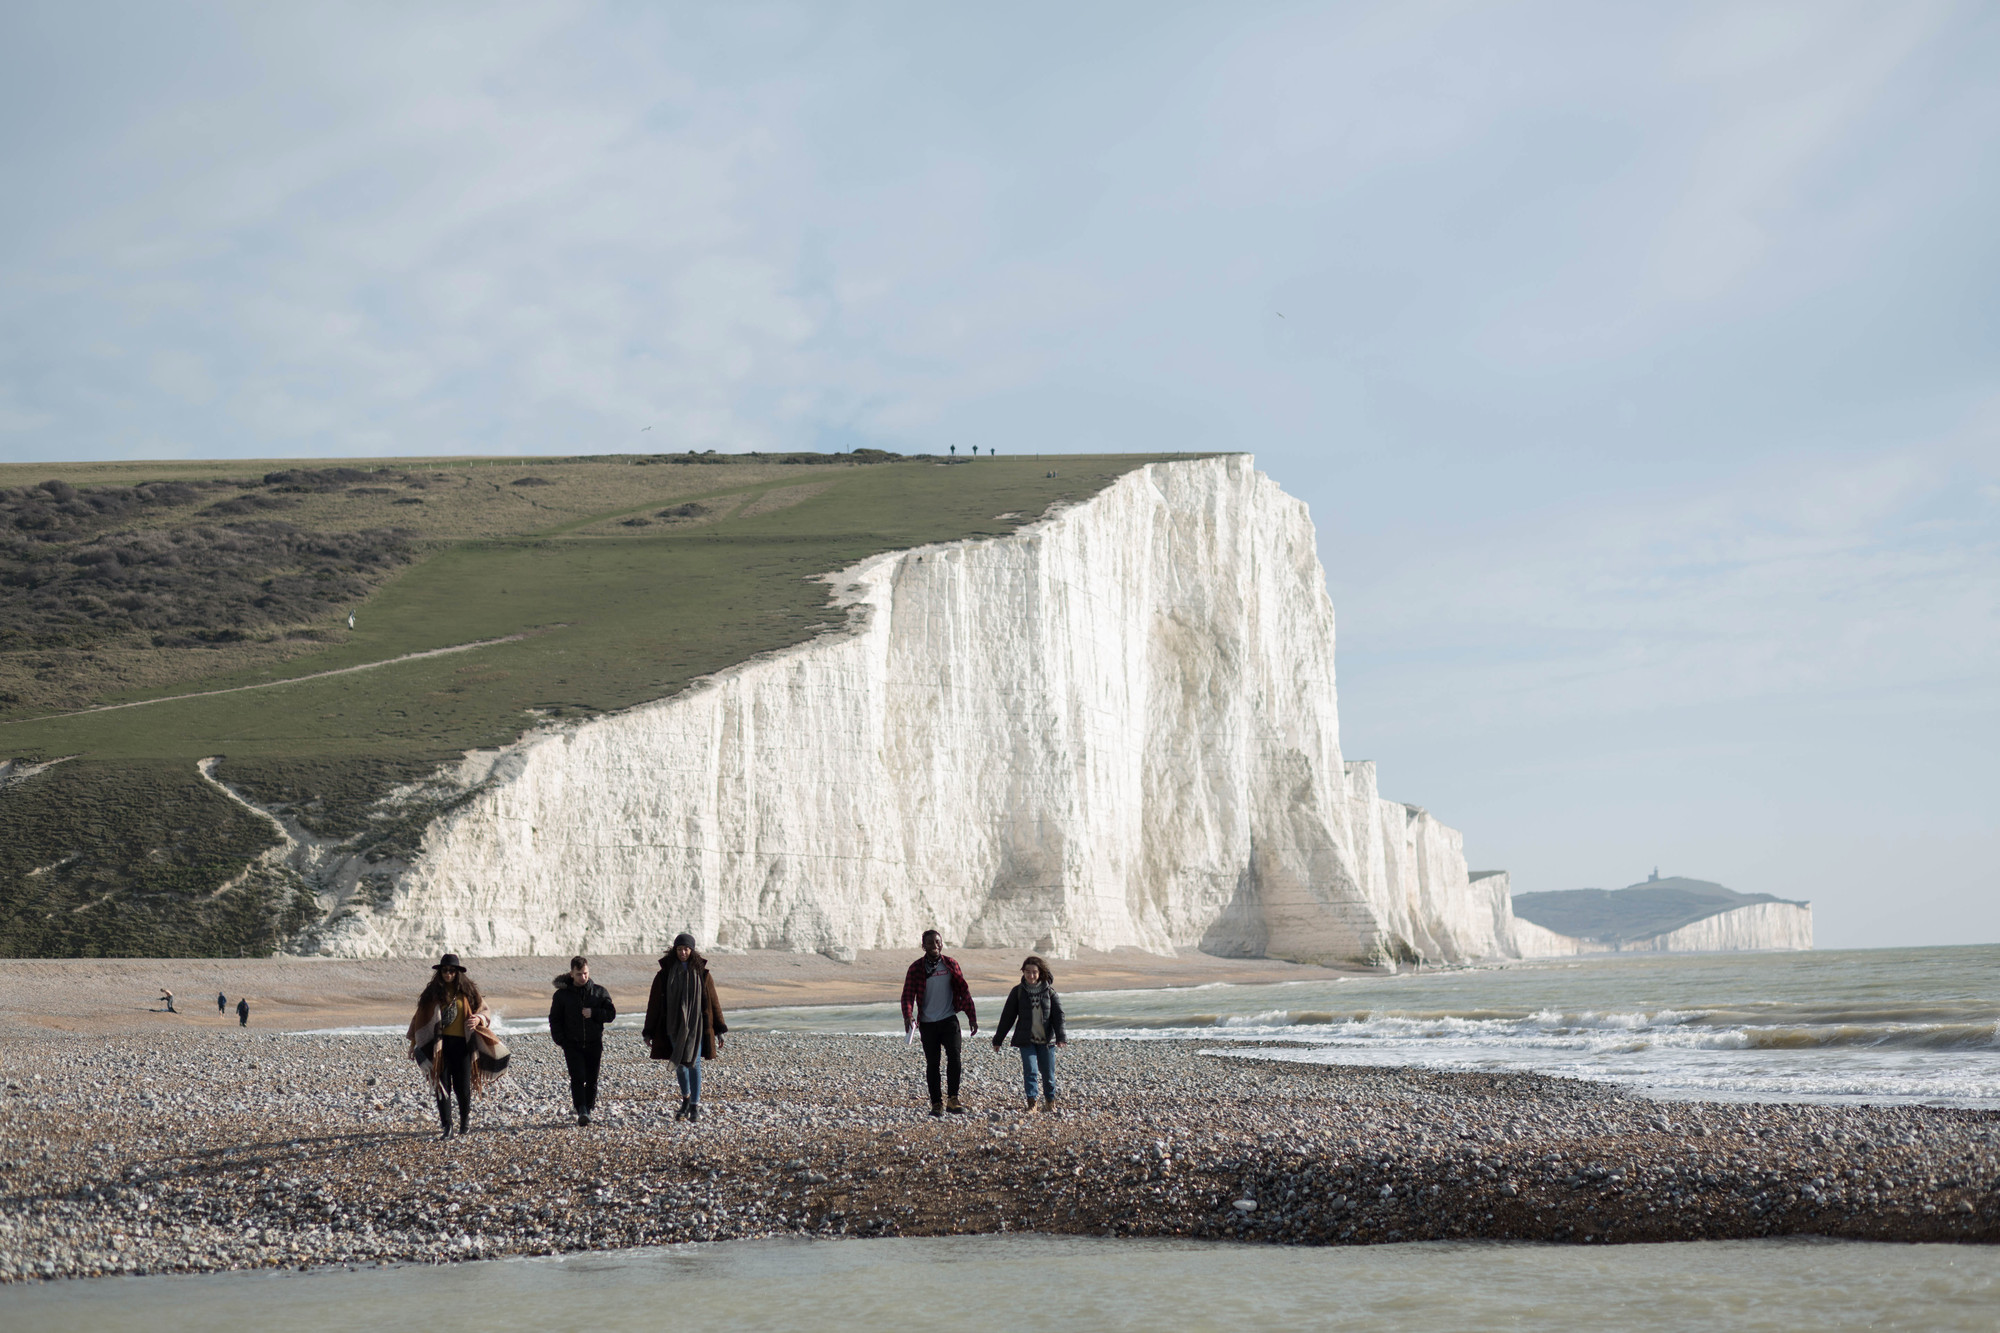 New era for Seven Sisters to benefit people and nature image